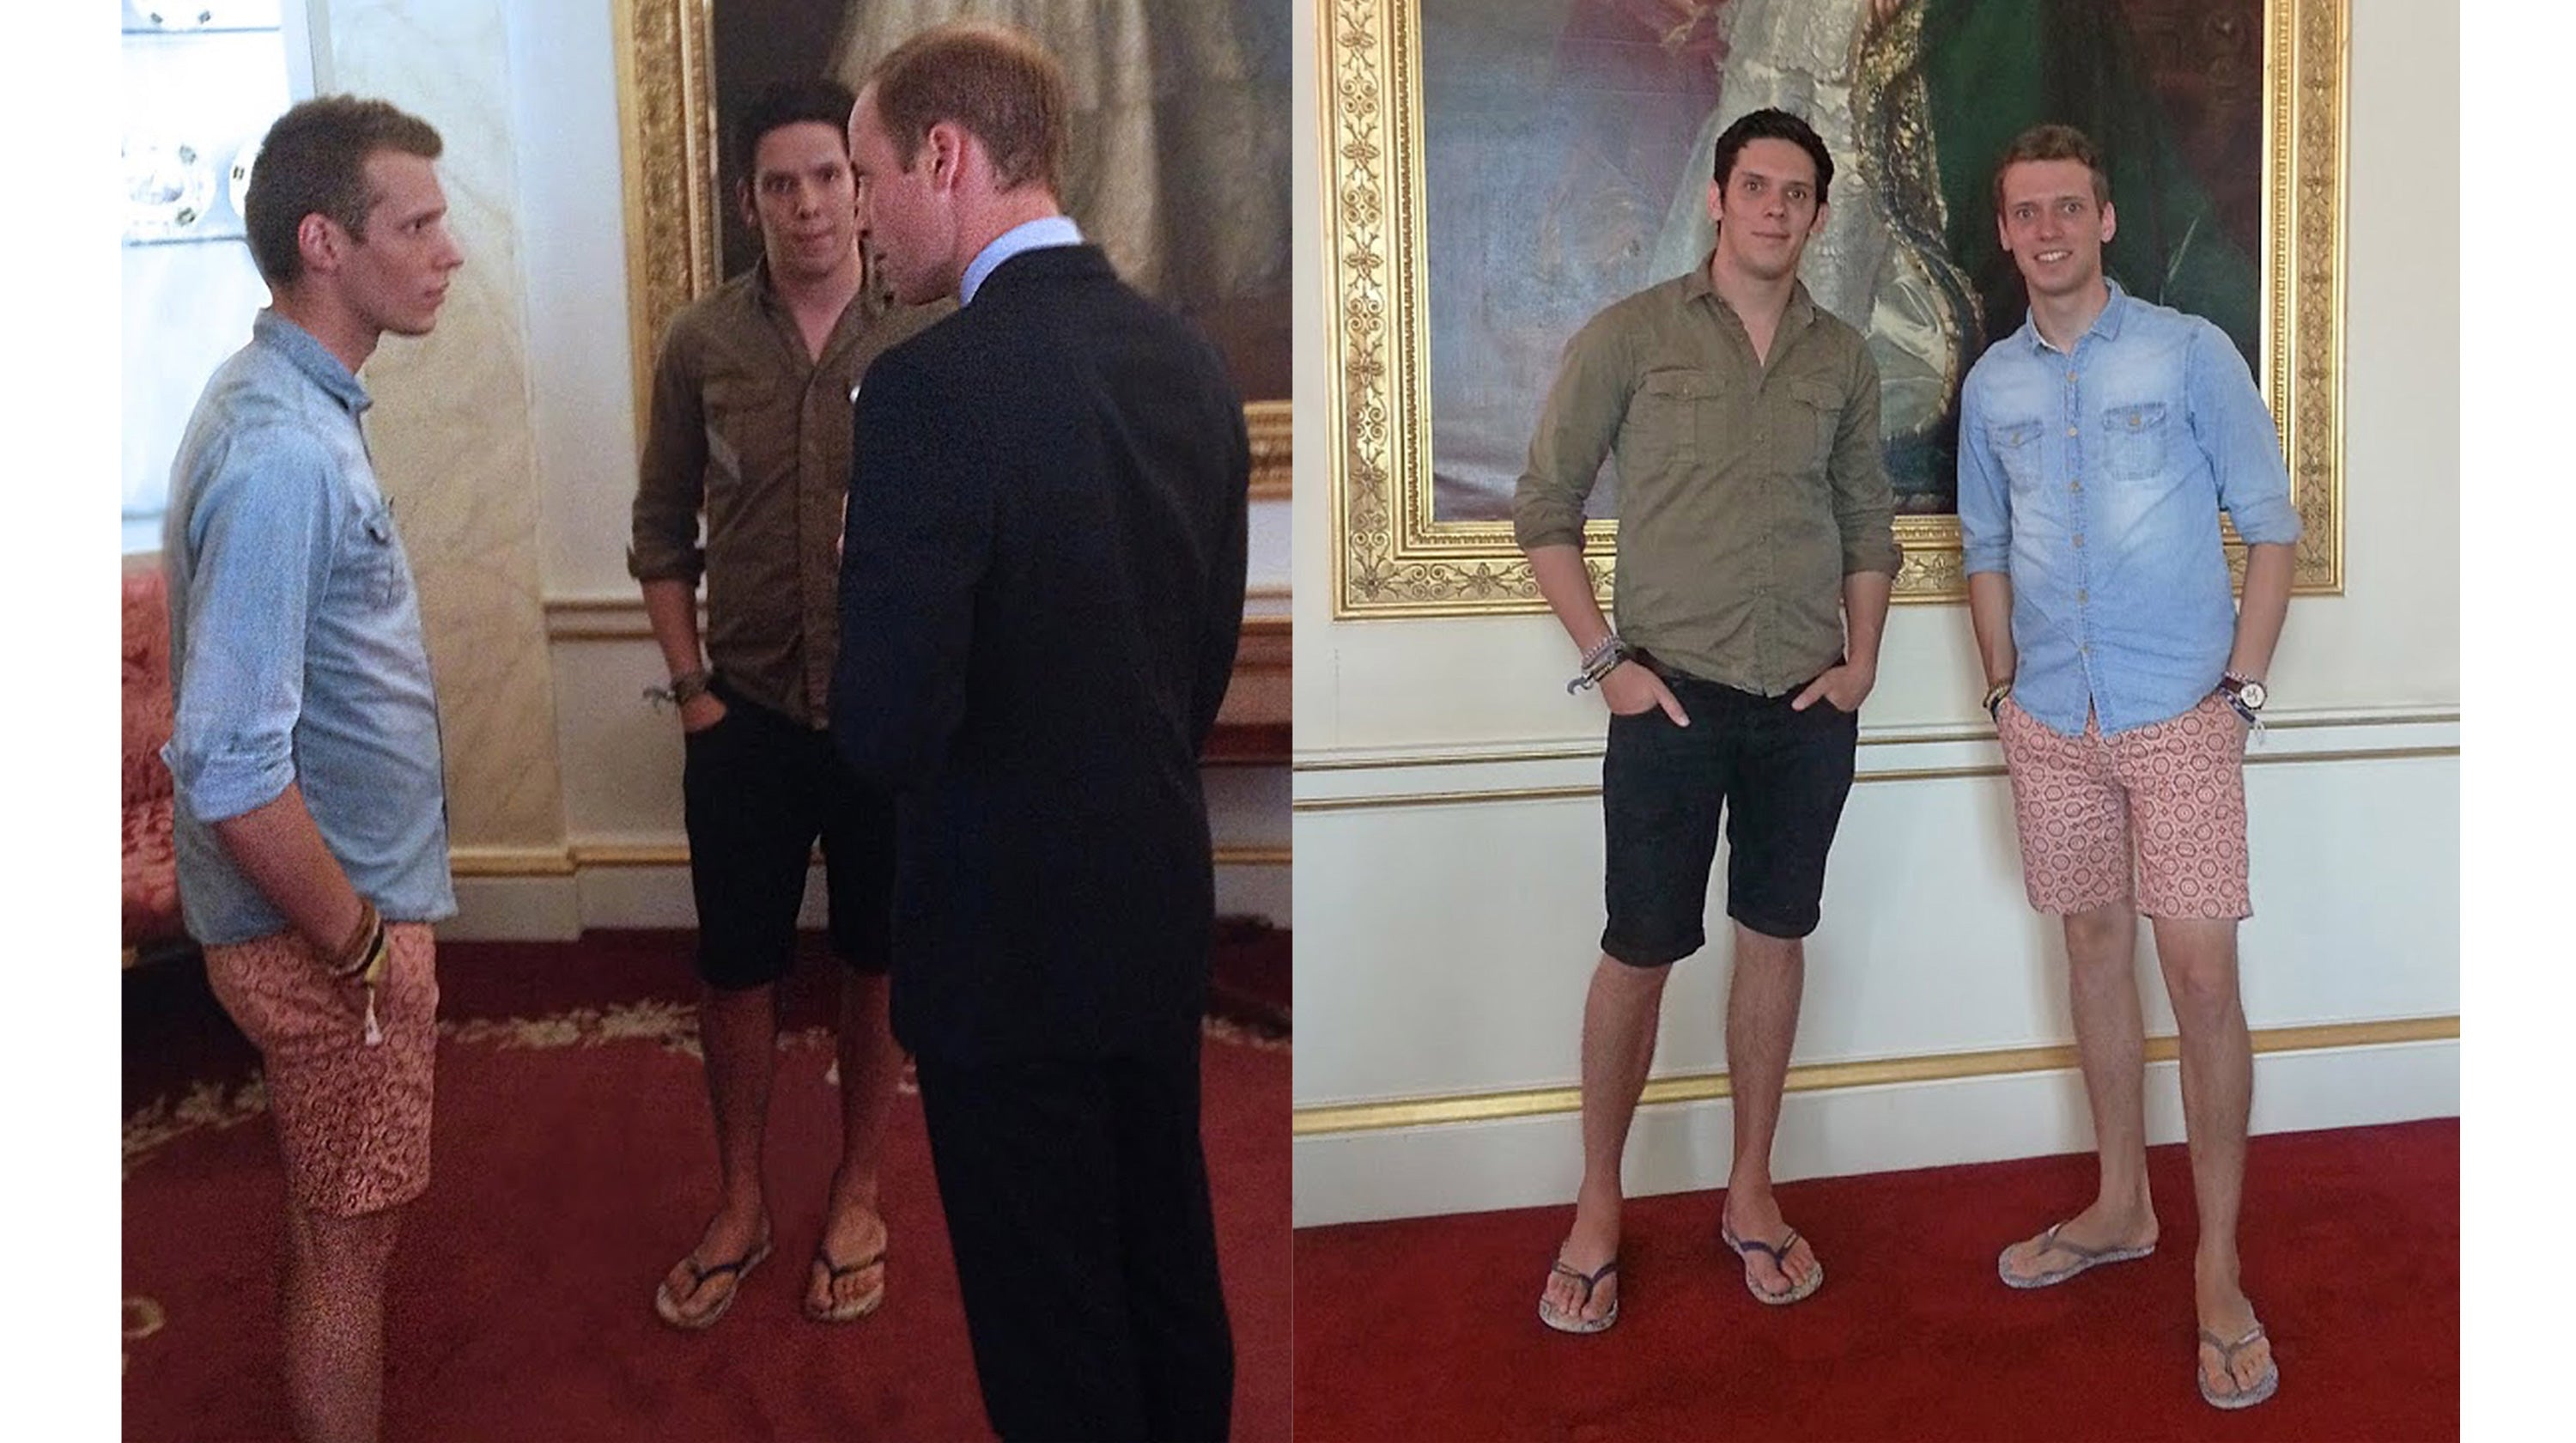 Gandys Brothers meeting Prince William